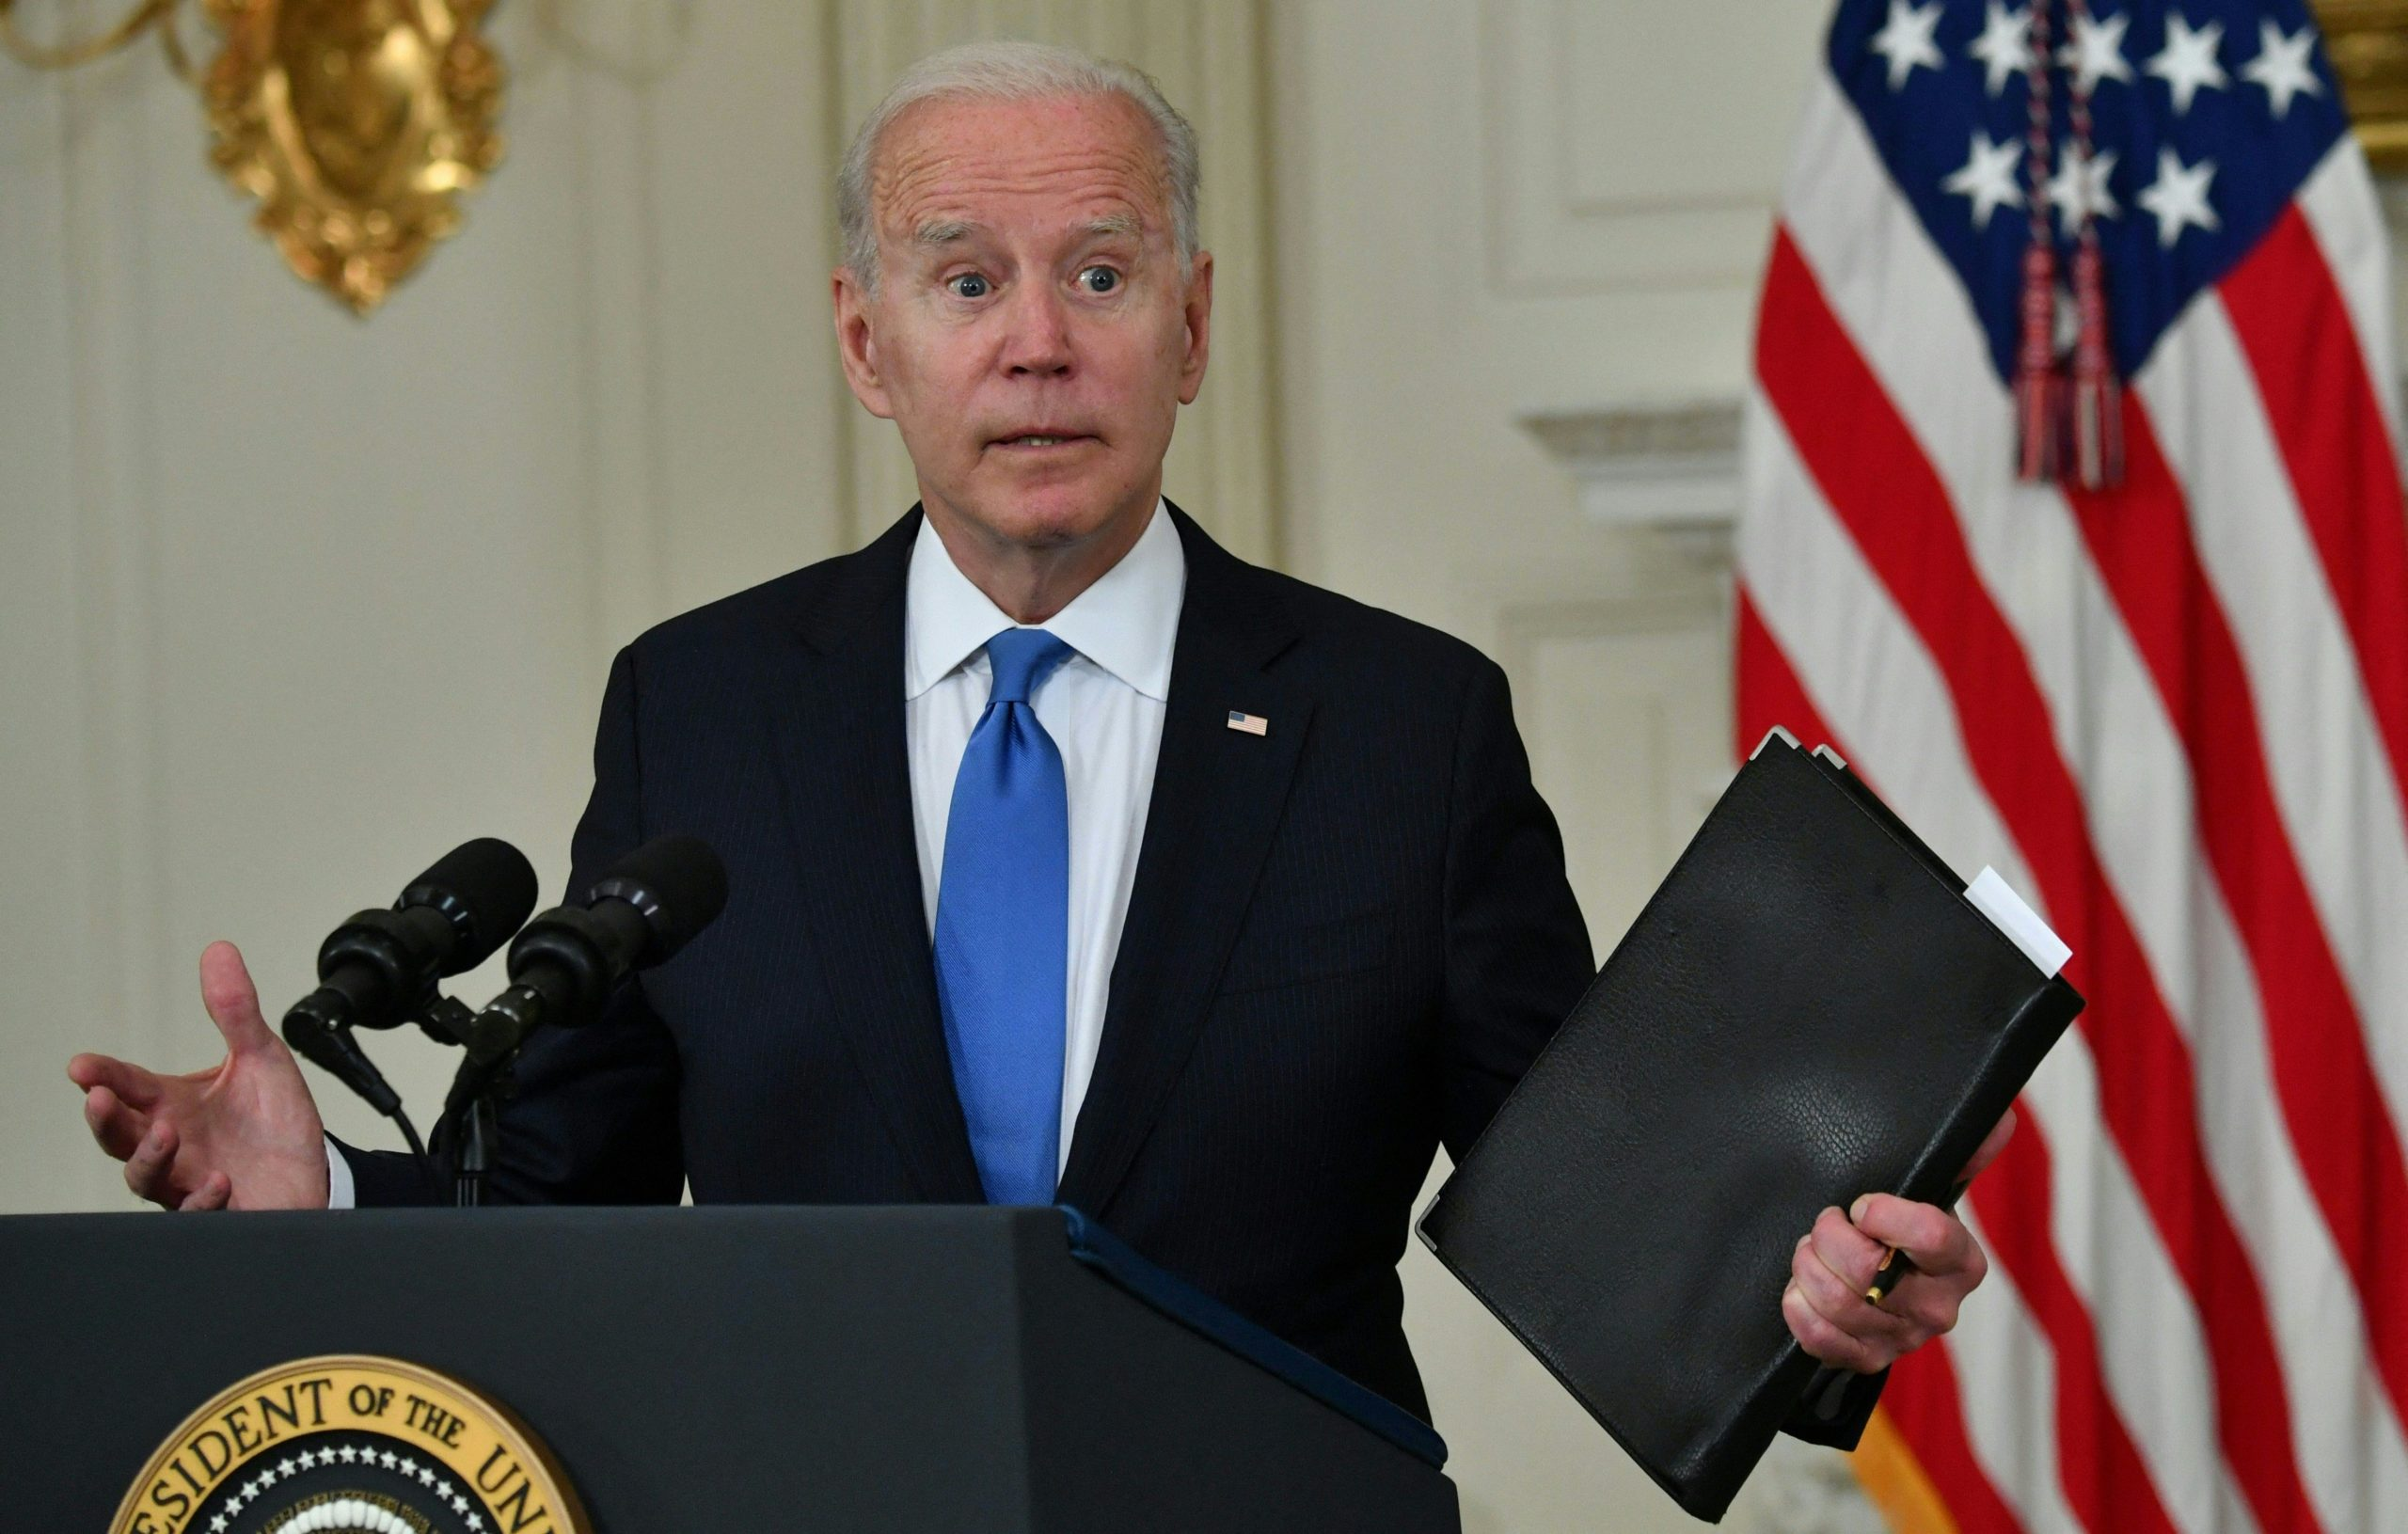 US President Joe Biden delivers remarks on the American Rescue Plan in the State Dining Room of the White House on May 5, 2021. (NICHOLAS KAMM/AFP via Getty Images)